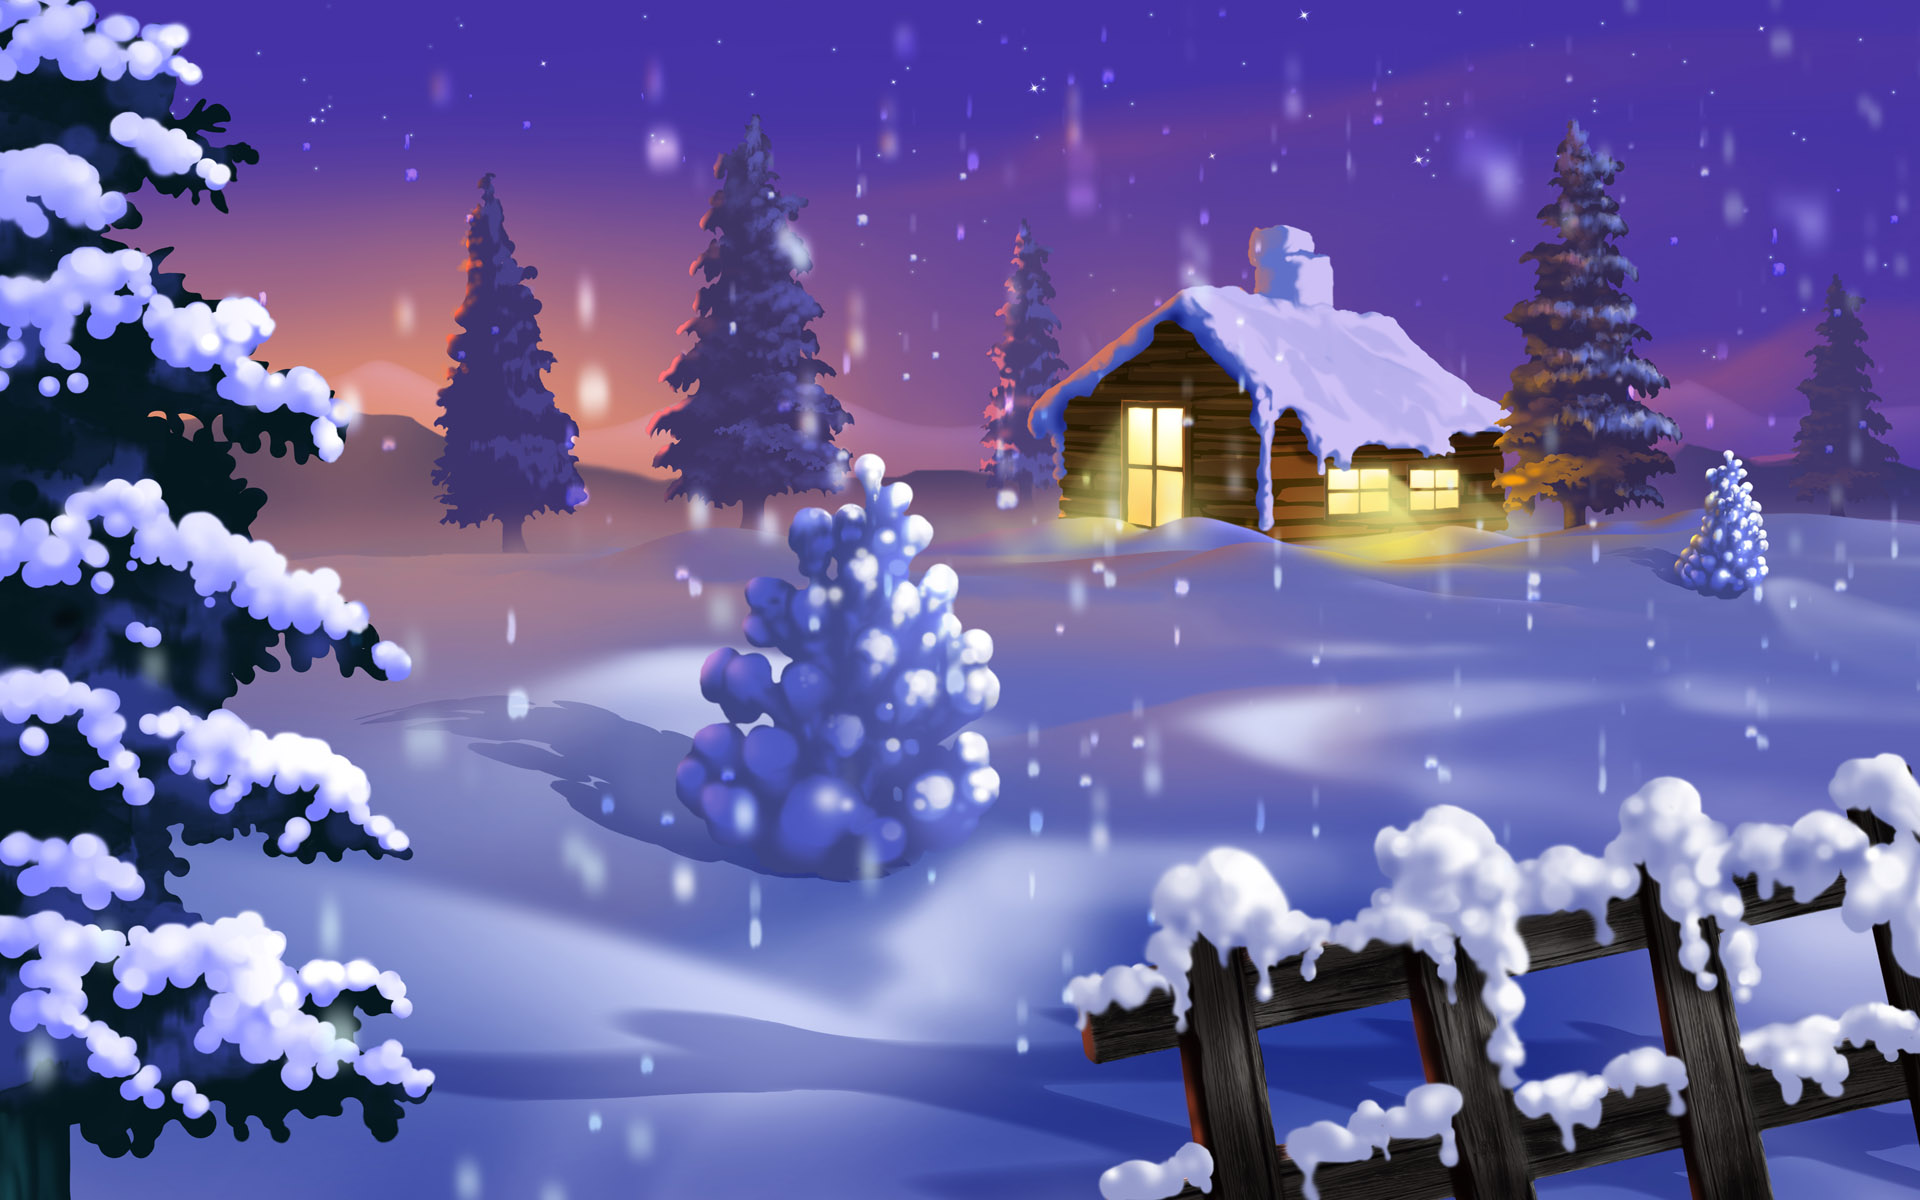 Christmas Winter Wallpapers Christmas Winter Wallpapers 1920x1200